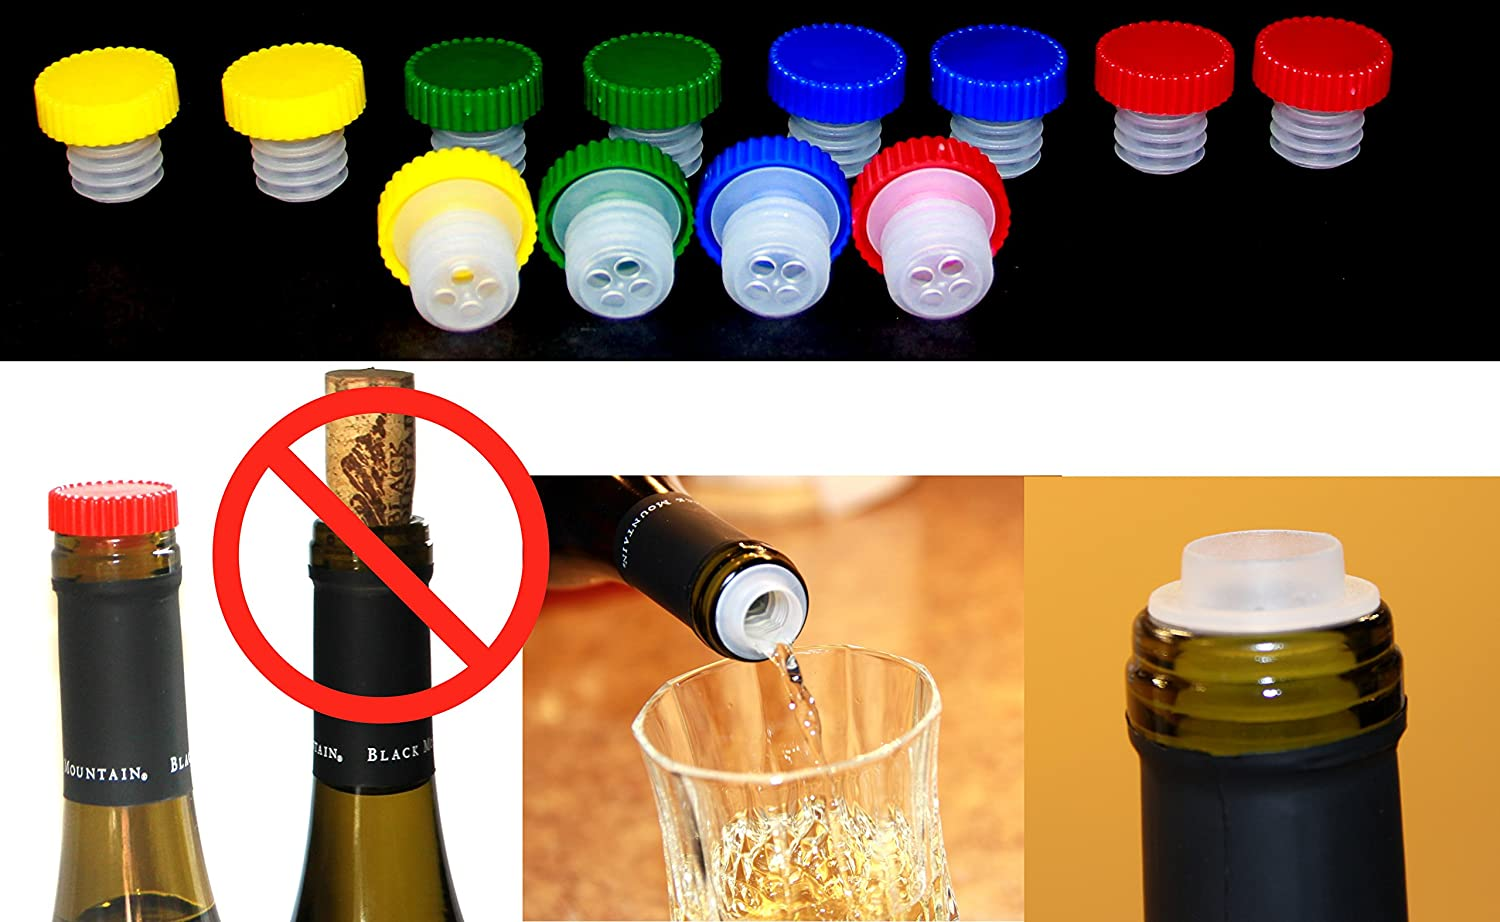 12pc Colorful Slow Wine Pourer Stopper Aerator Saver Slo Vino Makes a Great Gift For Wine Lovers ALAZCO AZ12SVP